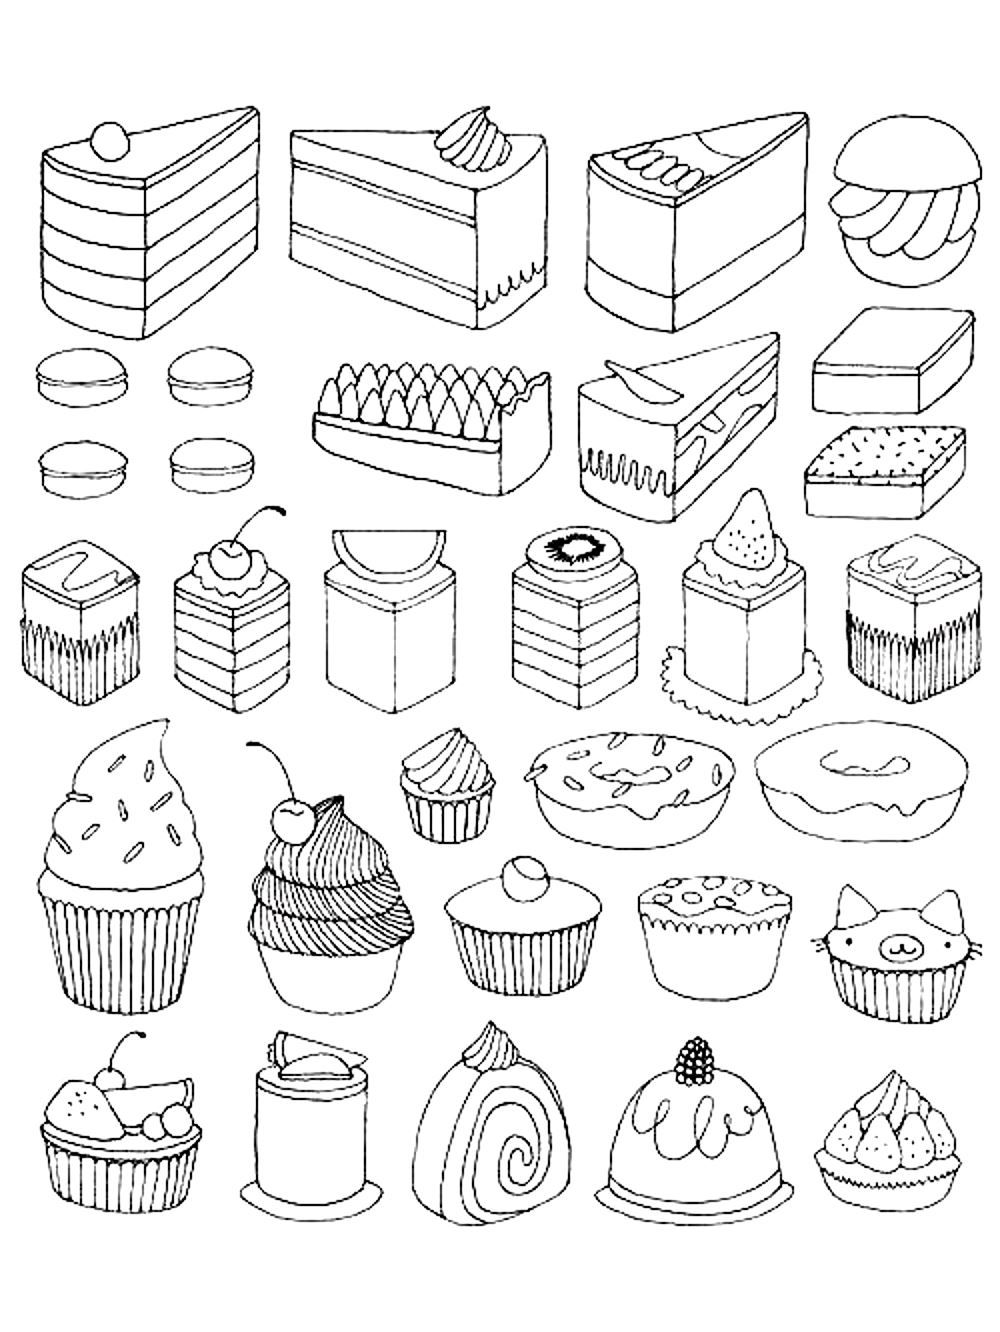 free coloring page coloring cupcakes and little cakes